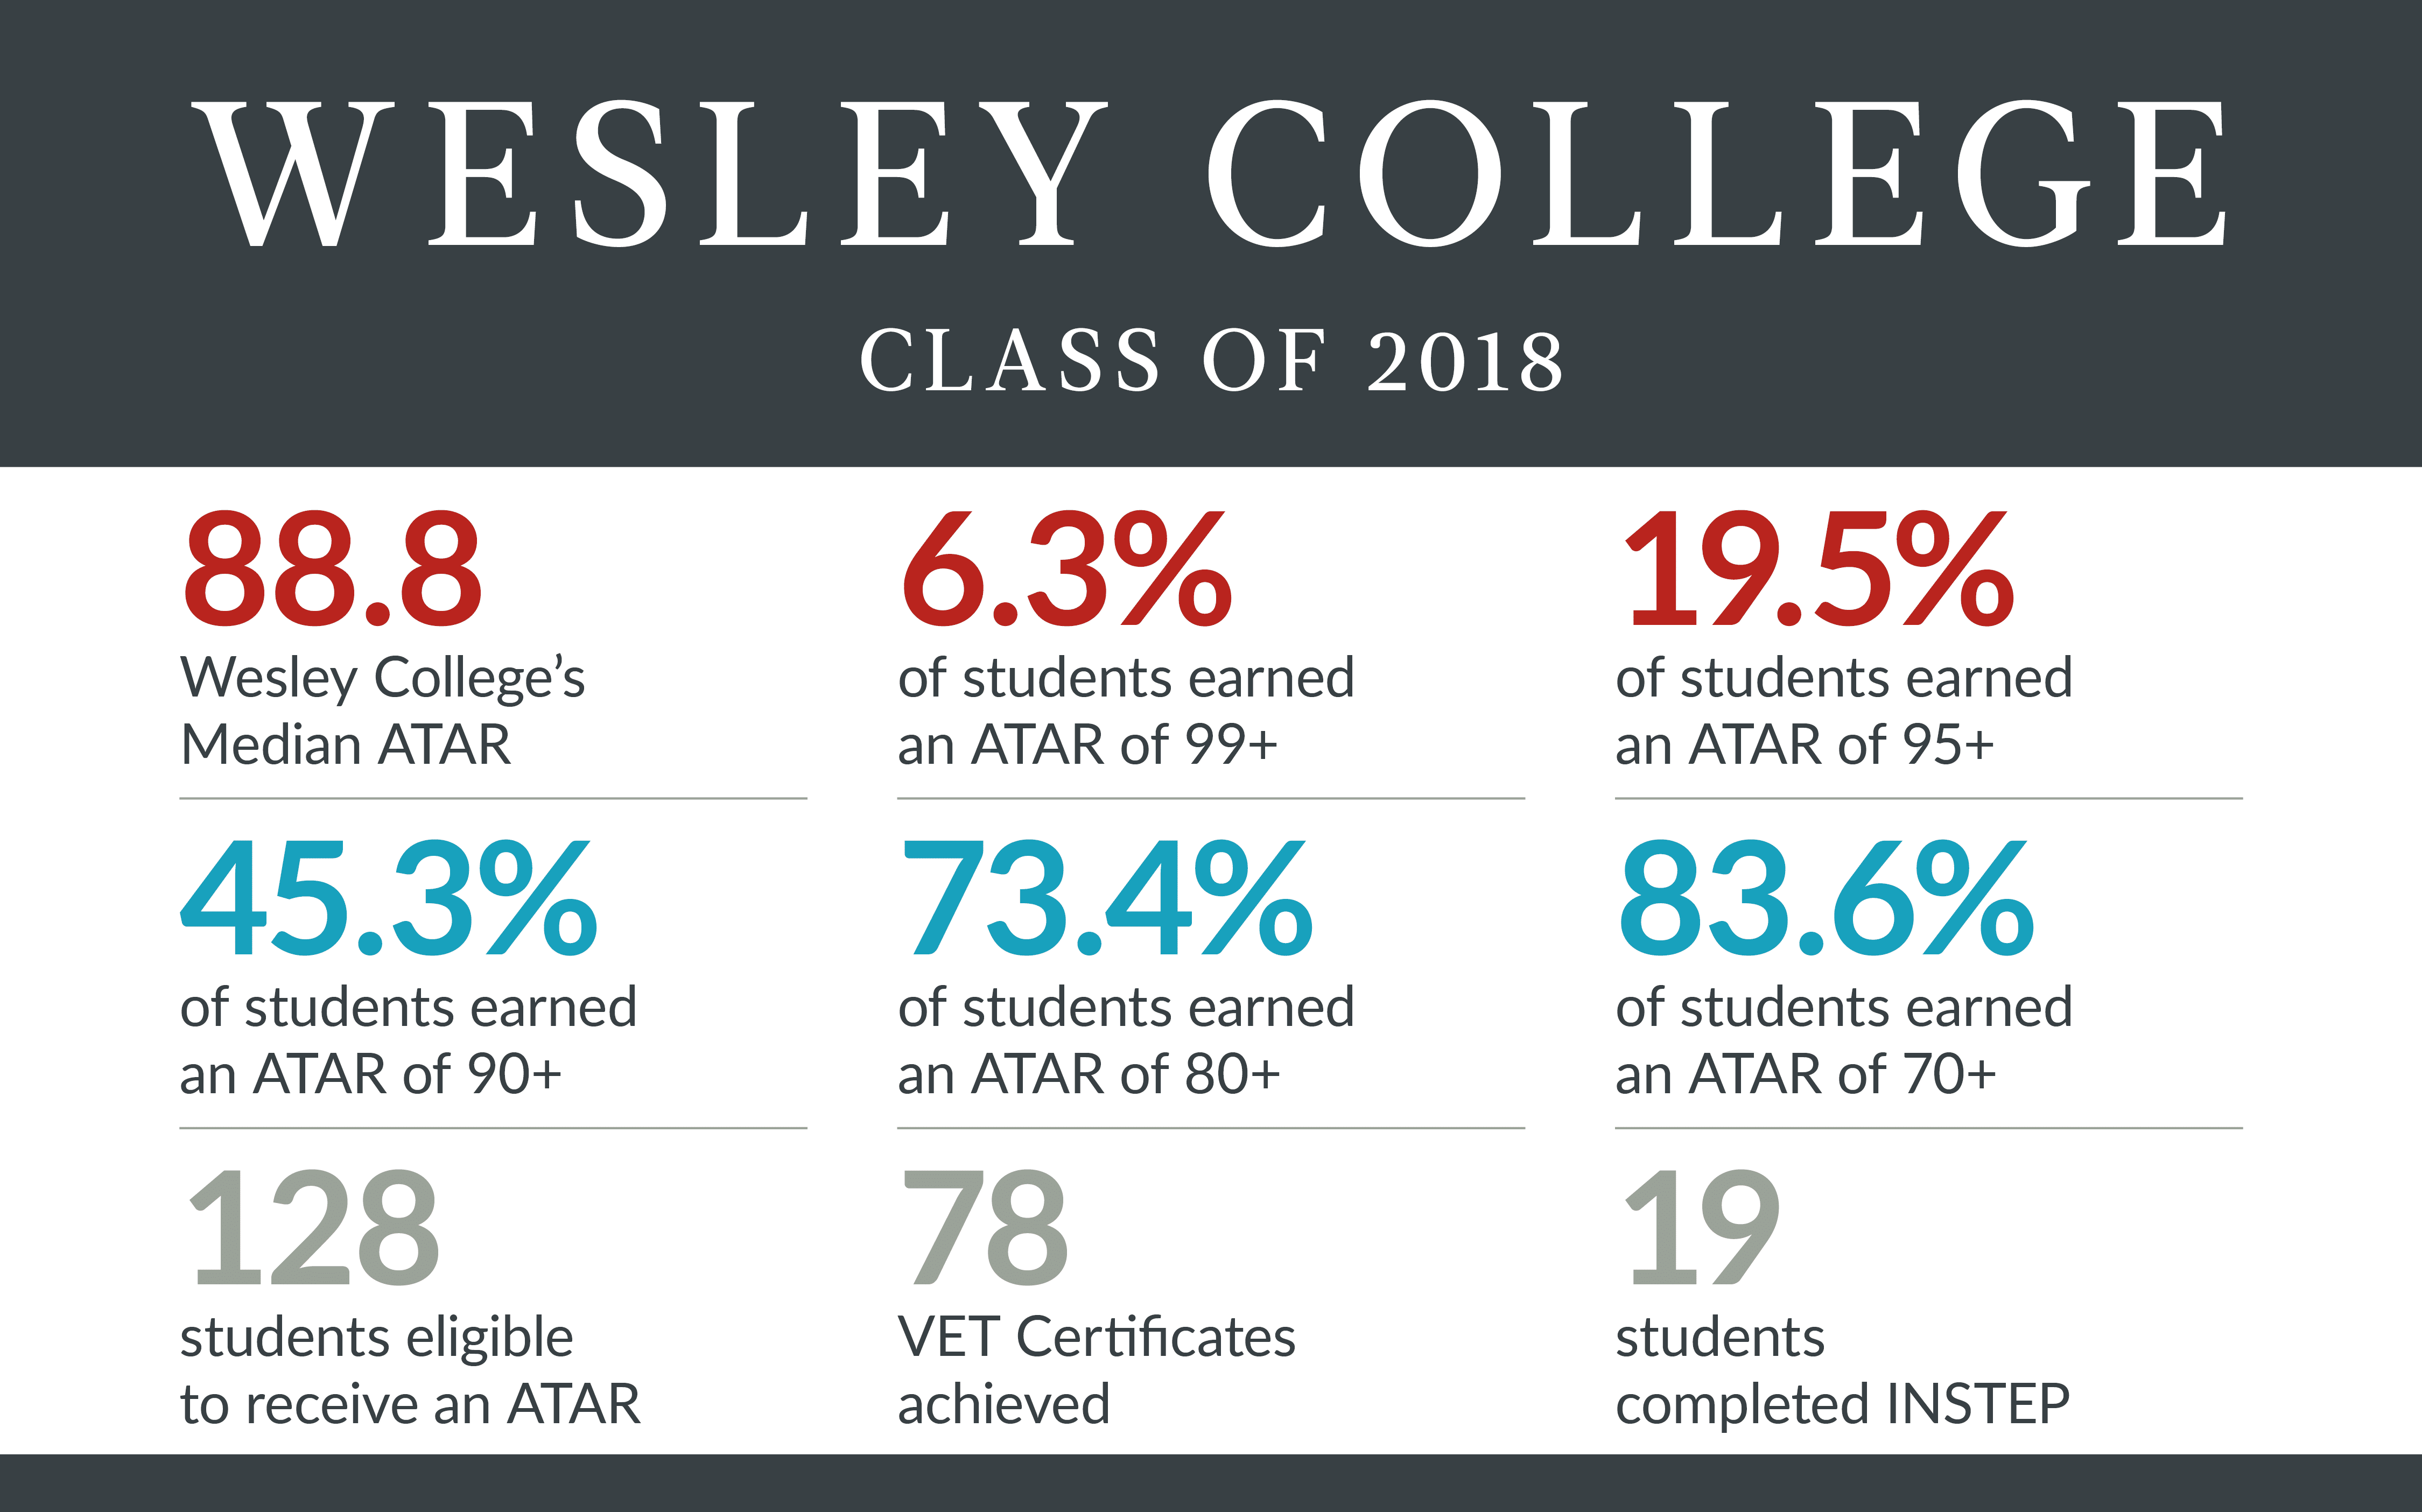 Academics graphic showing Wesley College's ATAR average of 88.8.